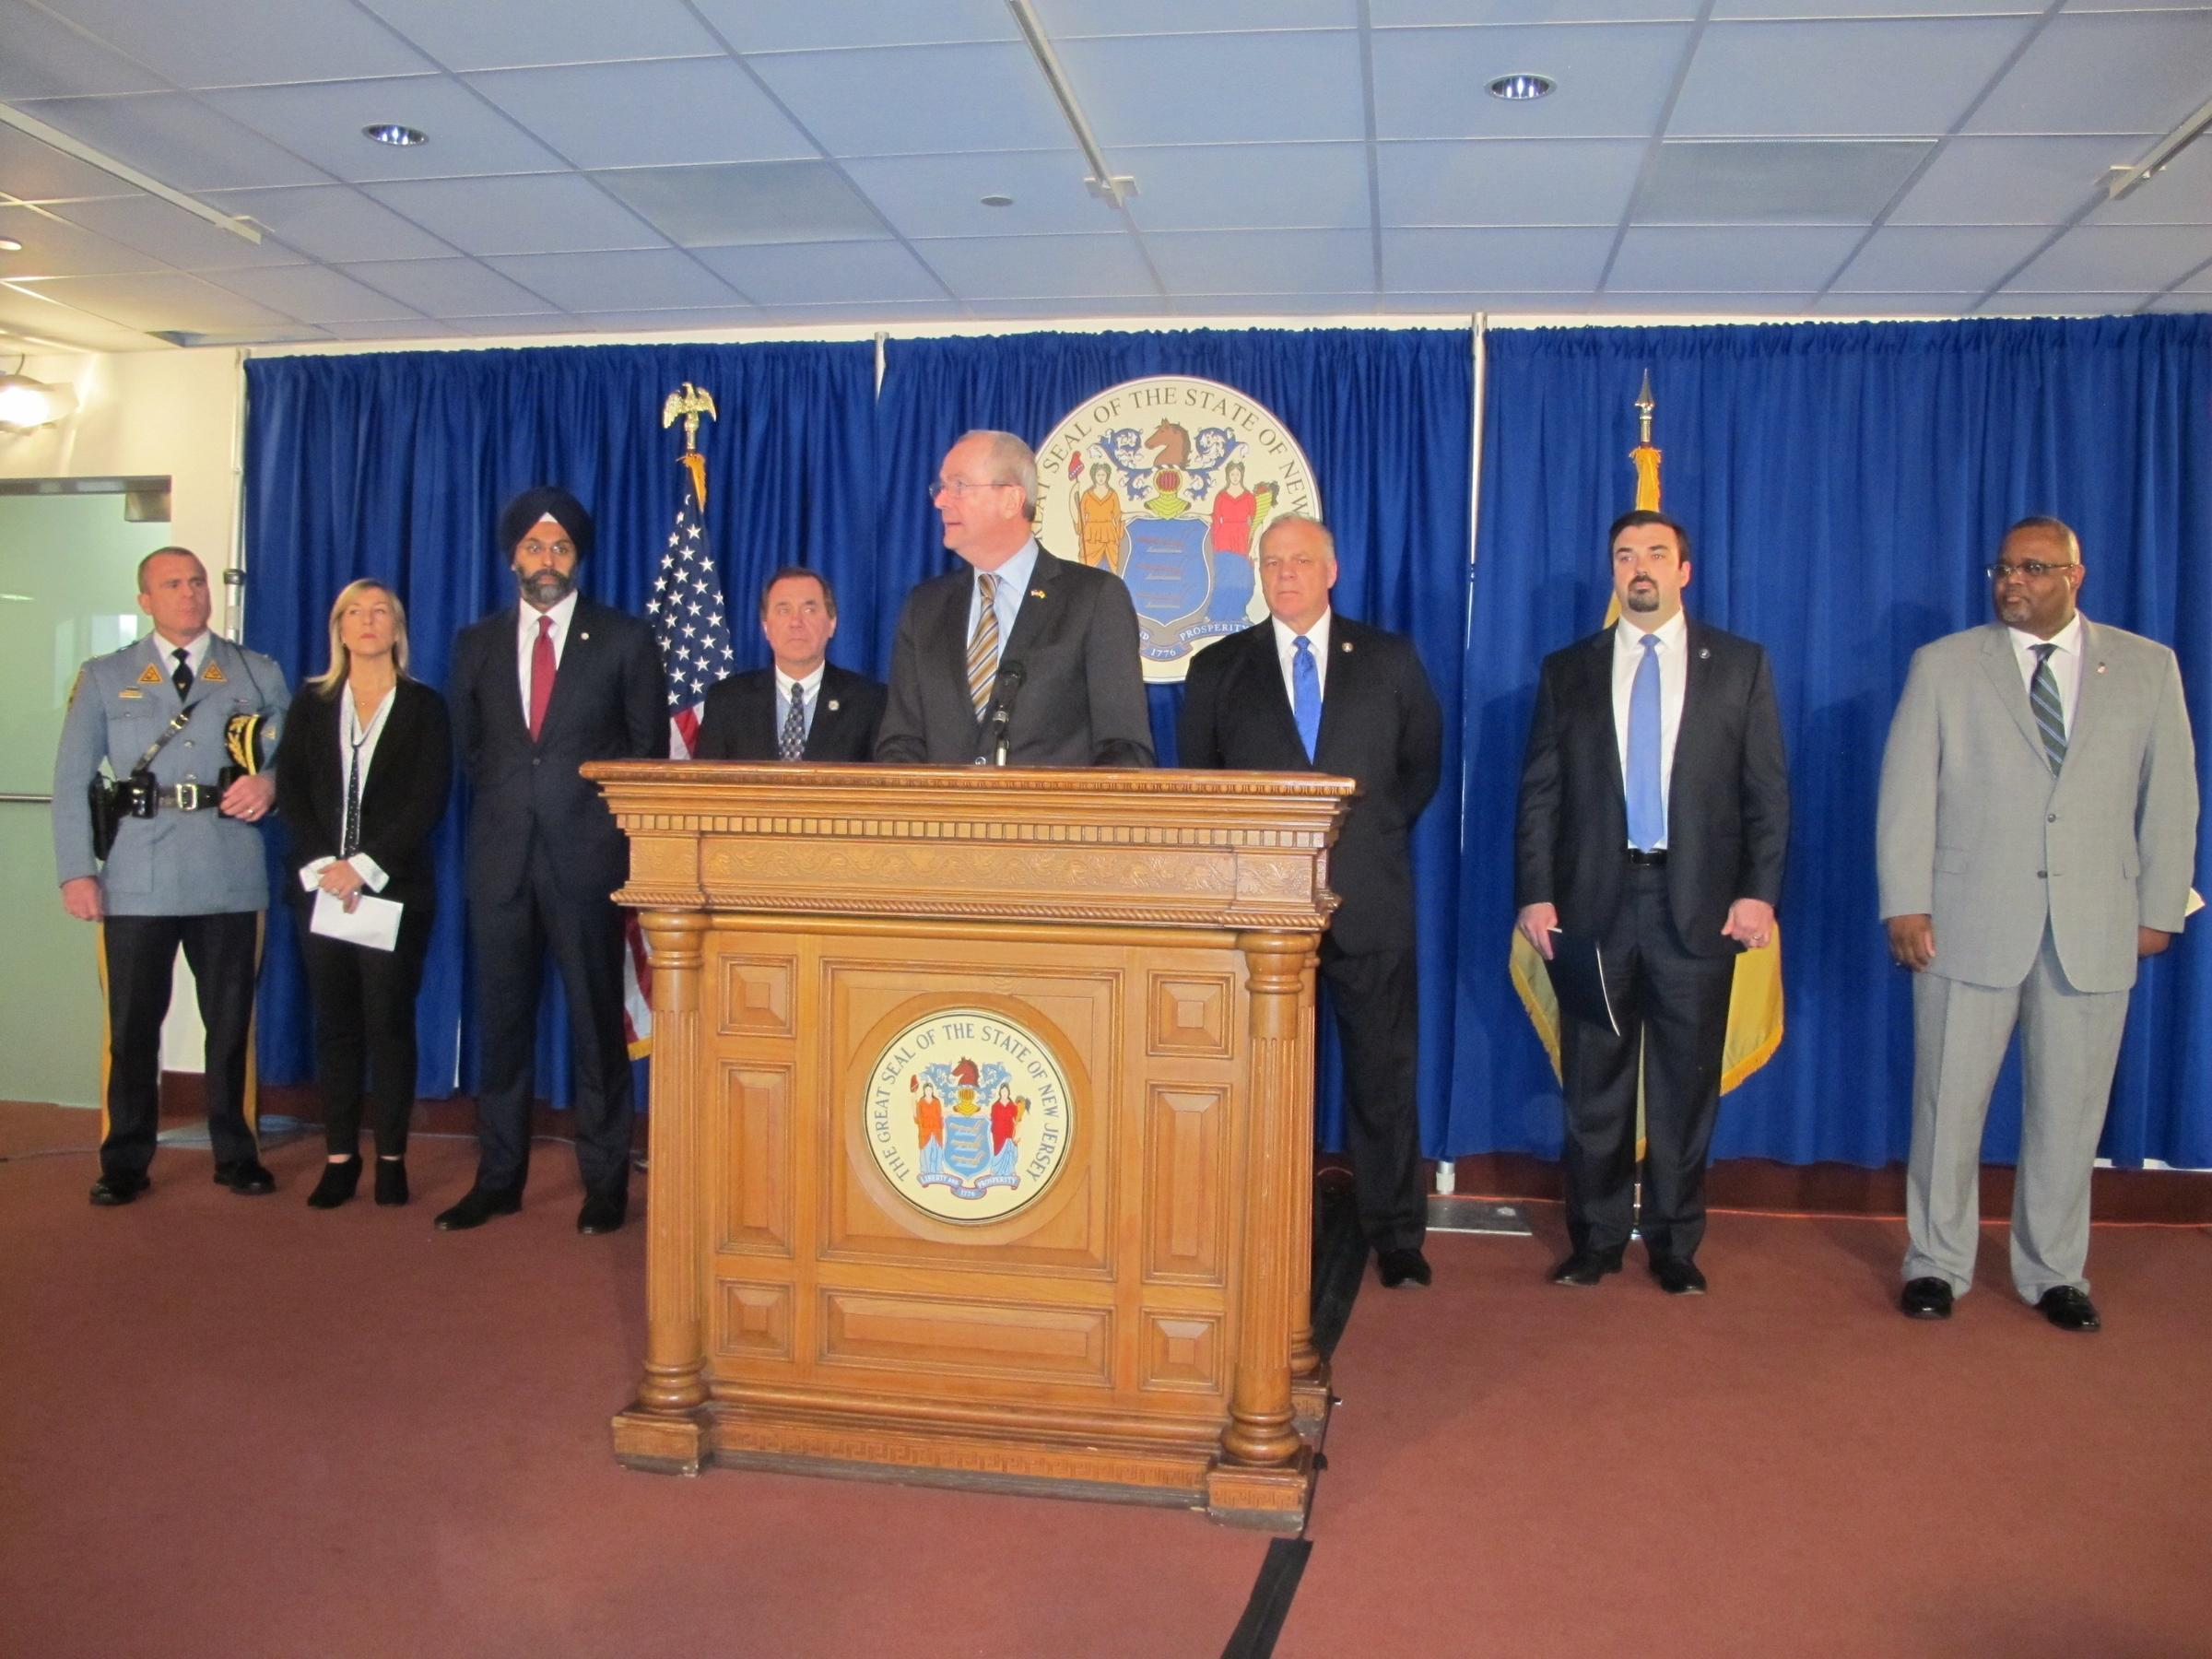 N.J. making school safety a top priority, governor says - WHYY